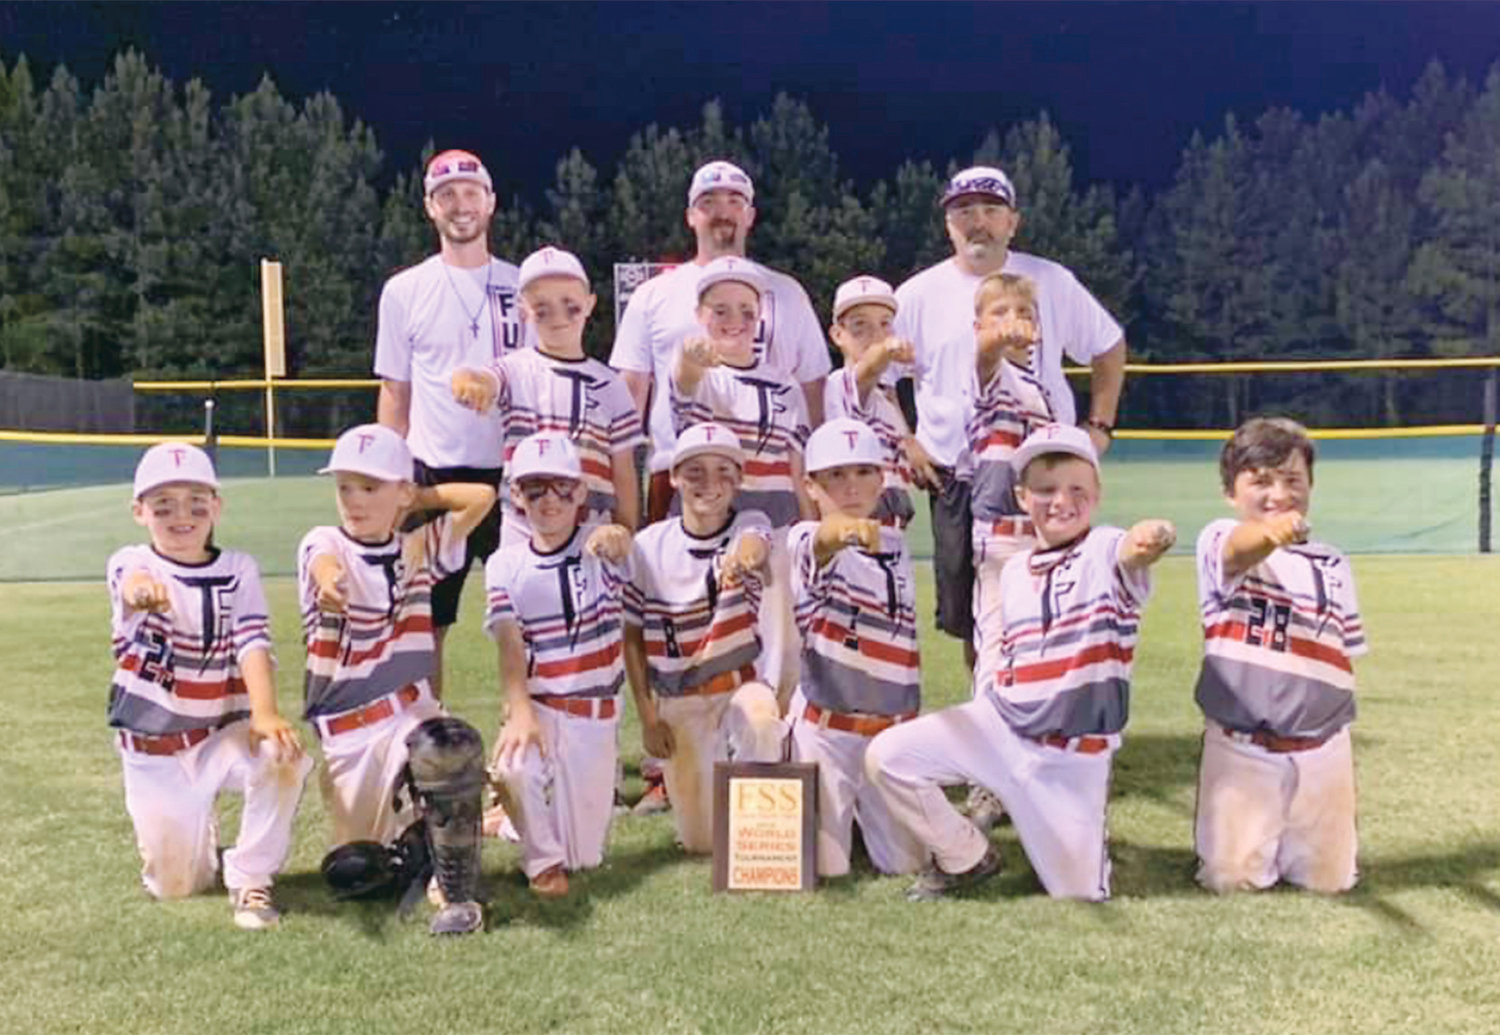 THE TENNESSEE FUEL 9-under baseball team won the FSS Future Sports Stars World Series at Heritage Park, in Dalton, Ga., recently. Front row, from left, Jax Knight, Jackson Jenkins, Landon Jenkins, Jackson Gonzalez, Connor Burns, Camden Beaty, and Treyton Pickett. Middle row, from left, Bryson Lawson, Kaleb Young, and Logan Hibbens. Back row, from left, coaches Ricky Webb , Gerald Brewer, and Joey Young.